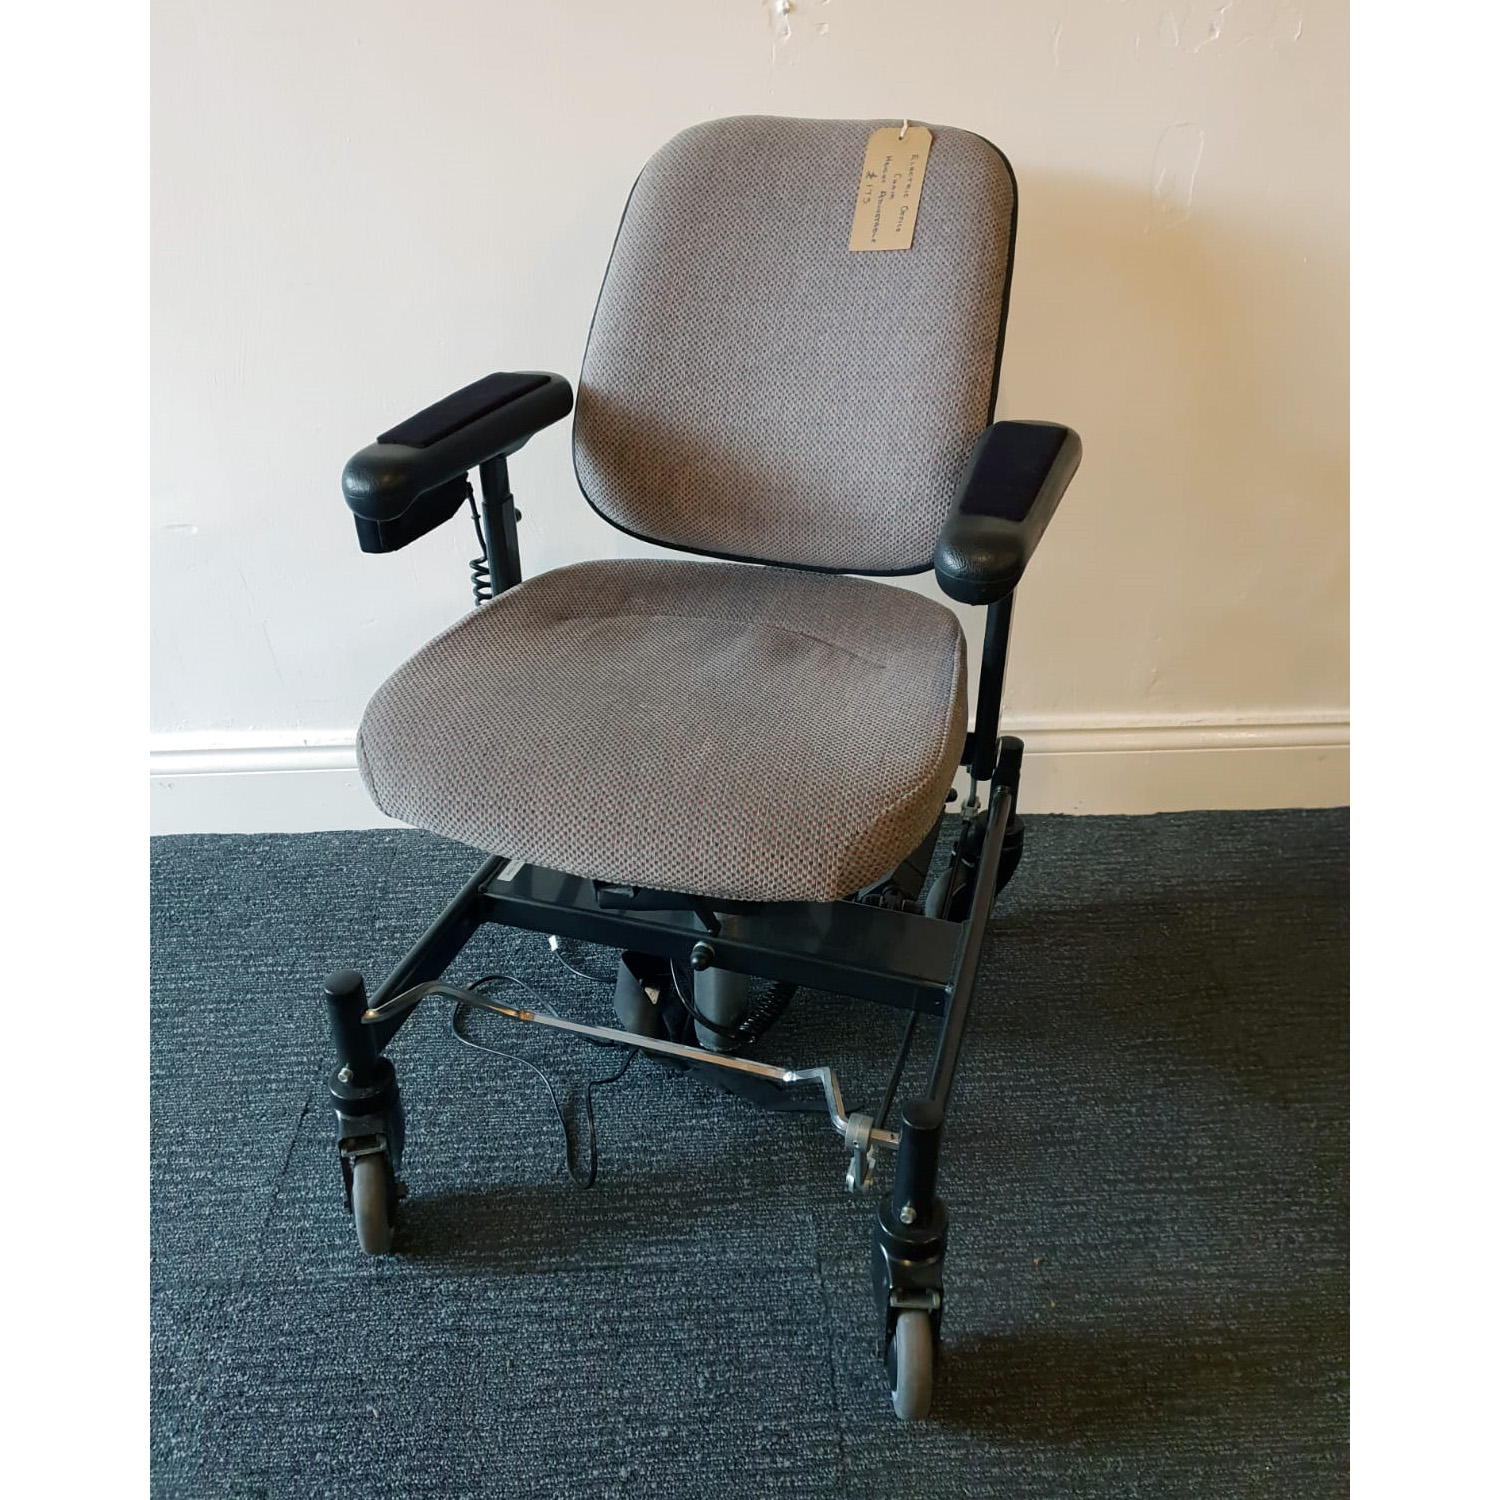 s_2018_10_24-office-chair